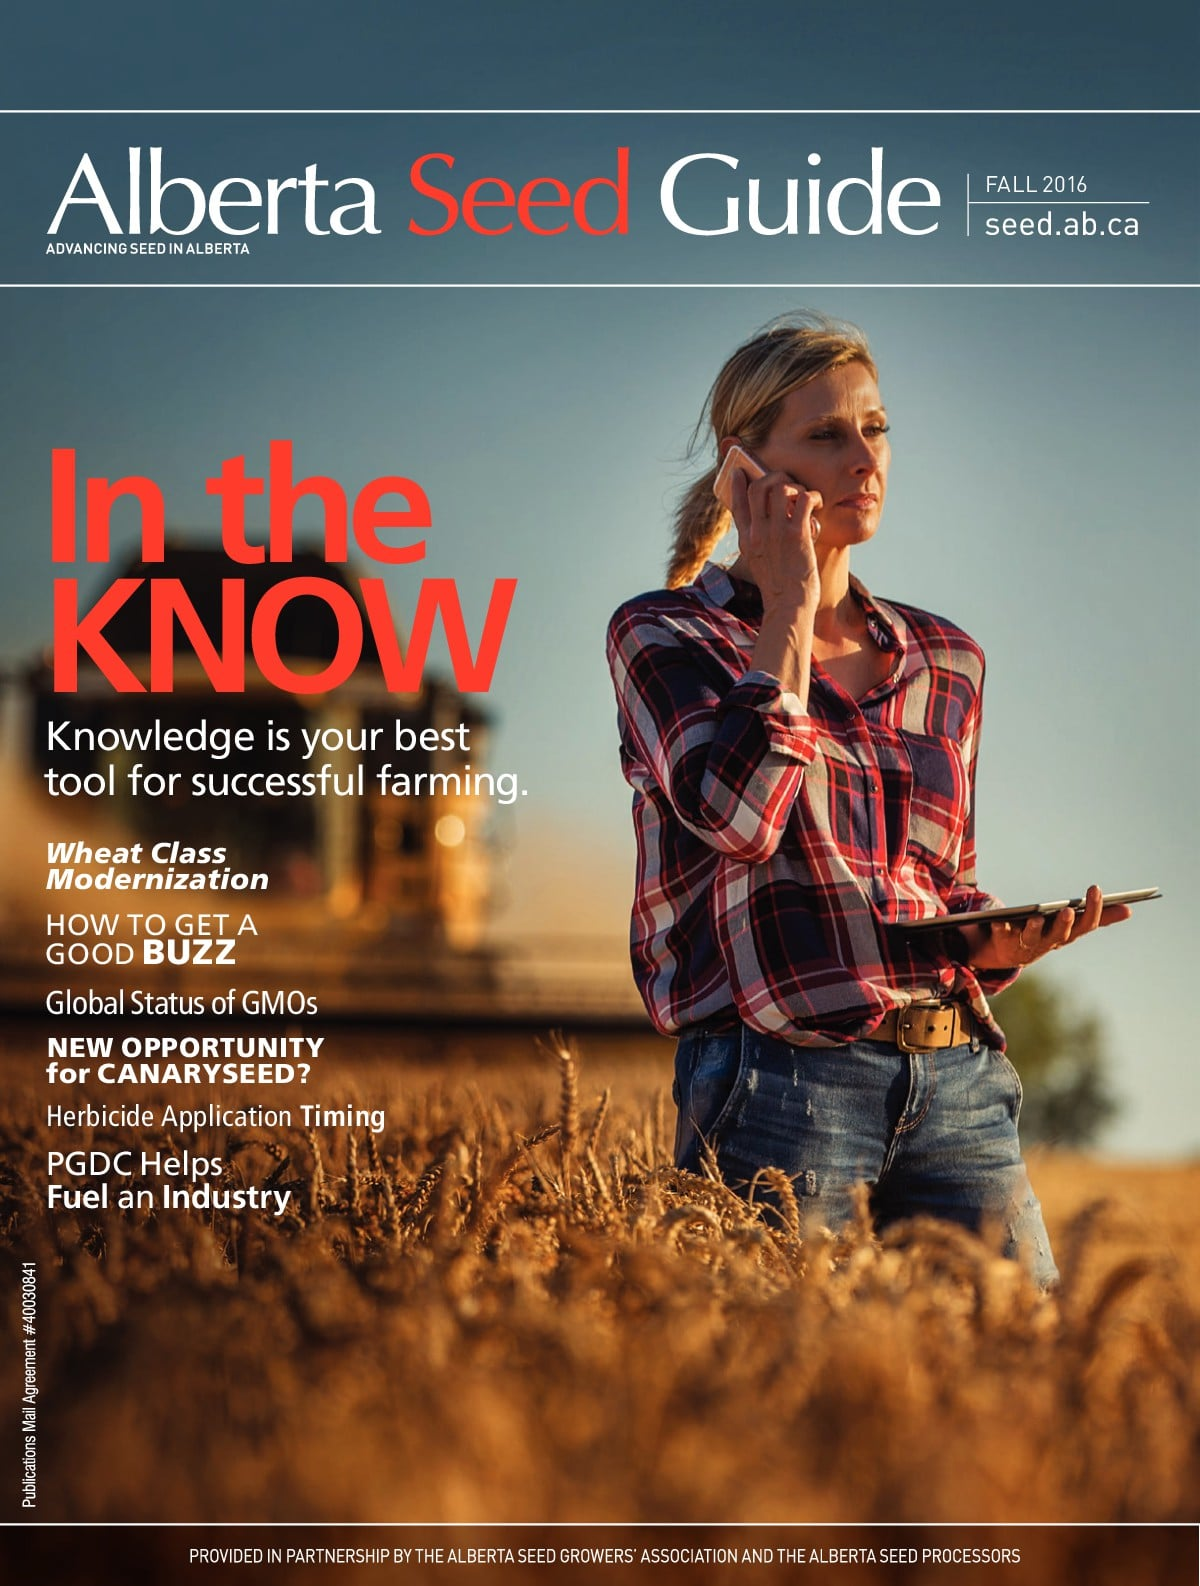 Fall 2016 – In the Know